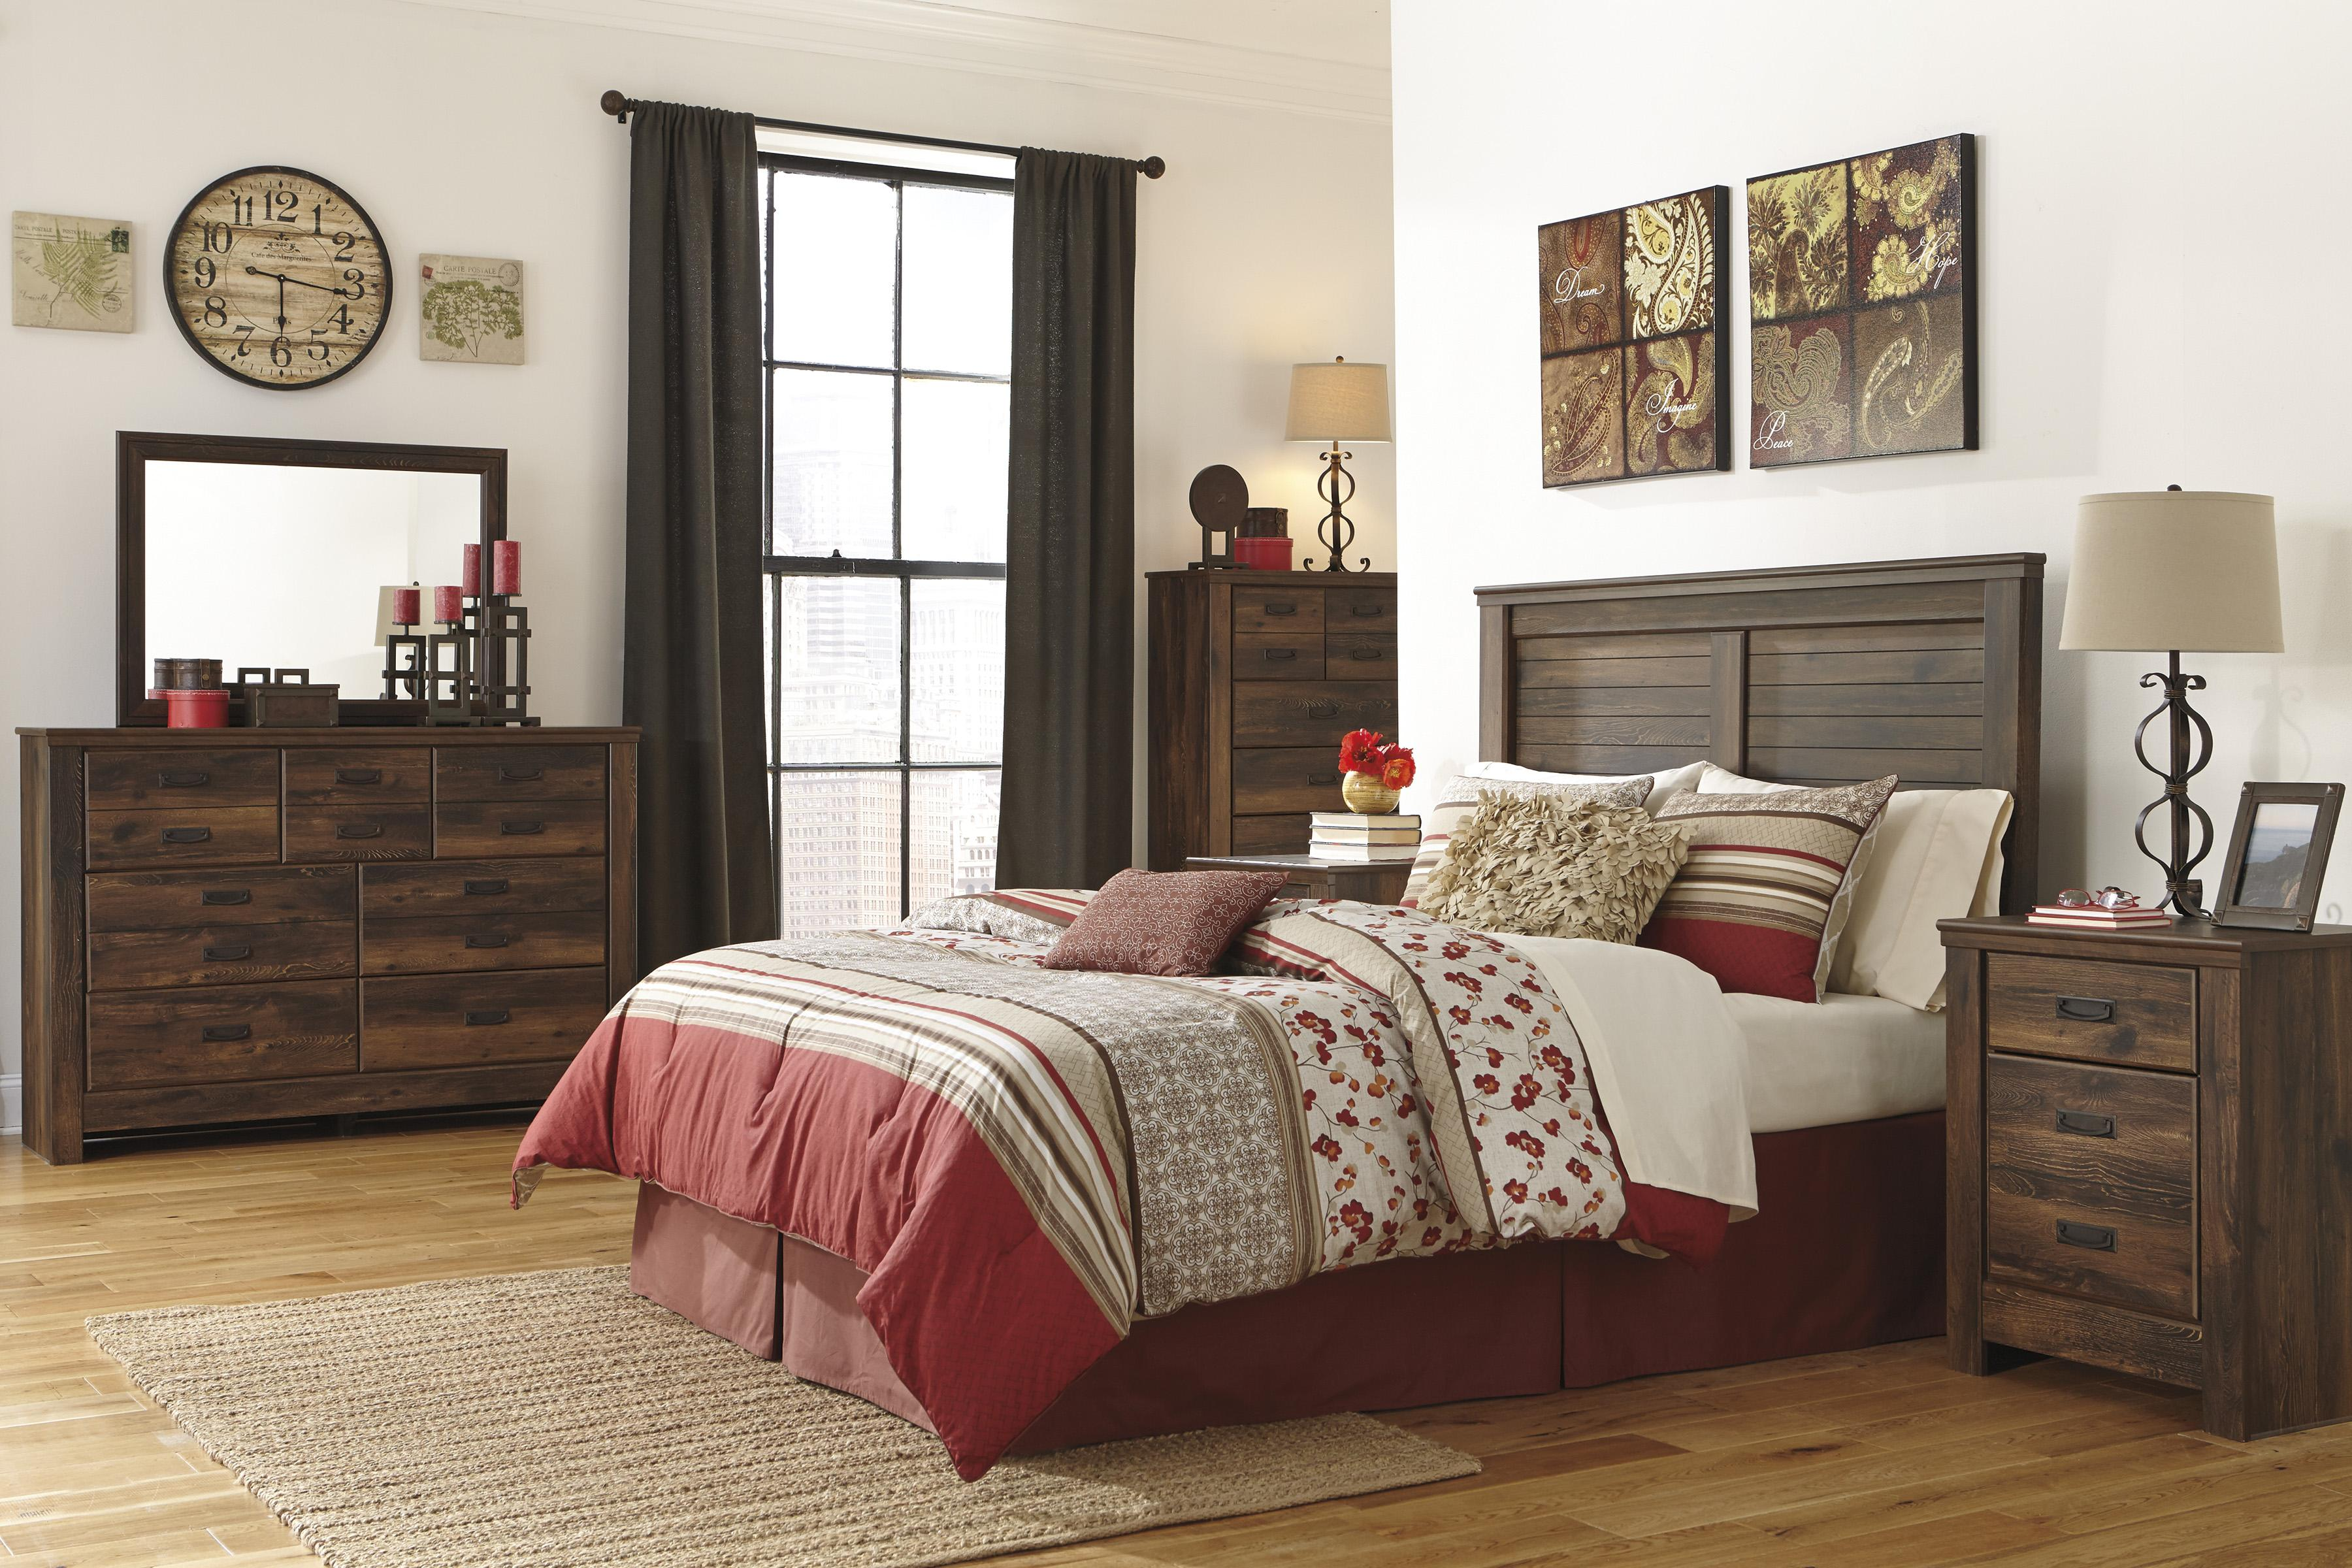 Quinden King Bedroom Group by Signature Design by Ashley at Northeast Factory Direct